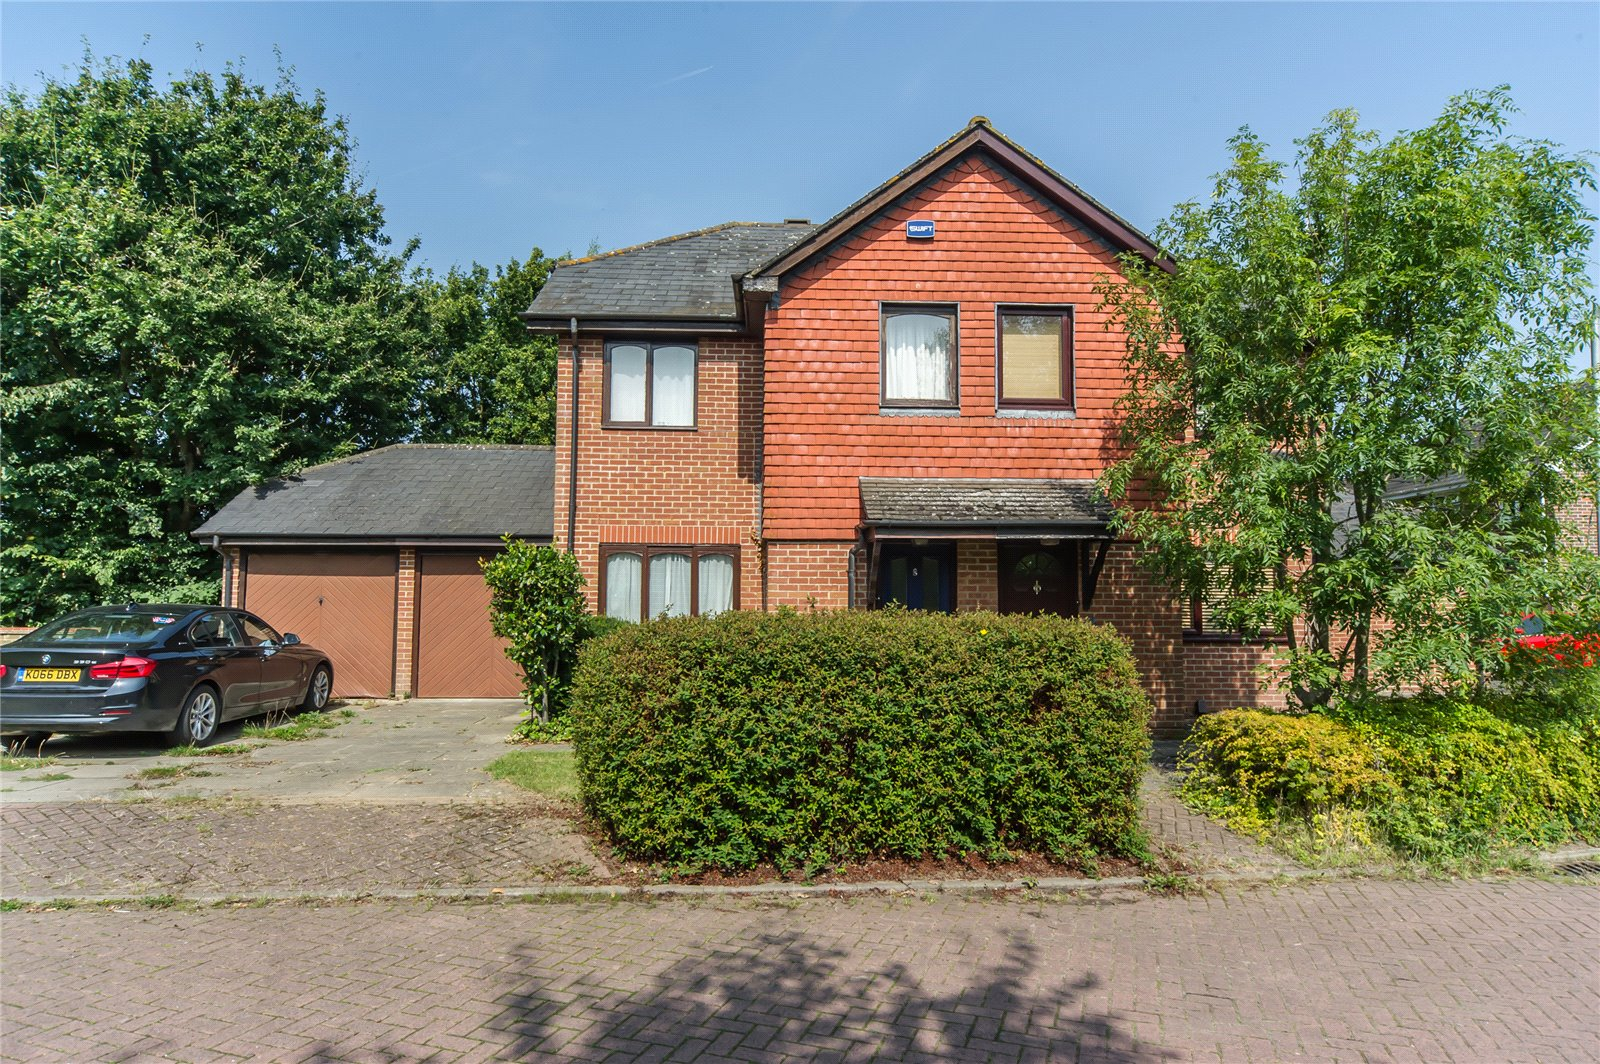 Amberley Close, Tonbridge, Kent, TN9